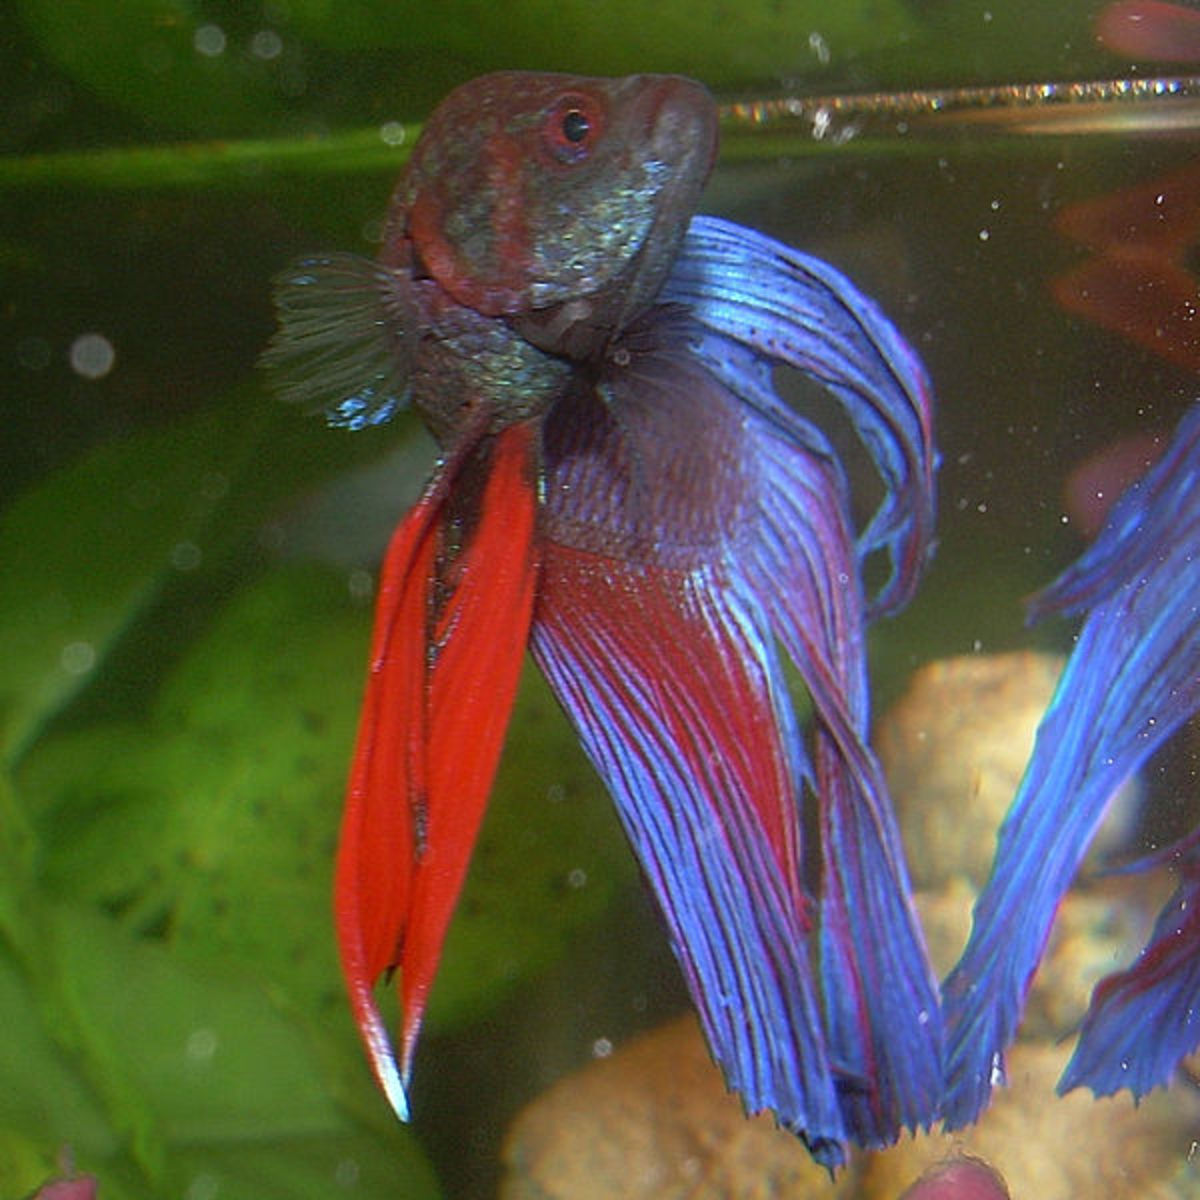 Betta fish tank ideas for your home or office pethelpful for Sick betta fish